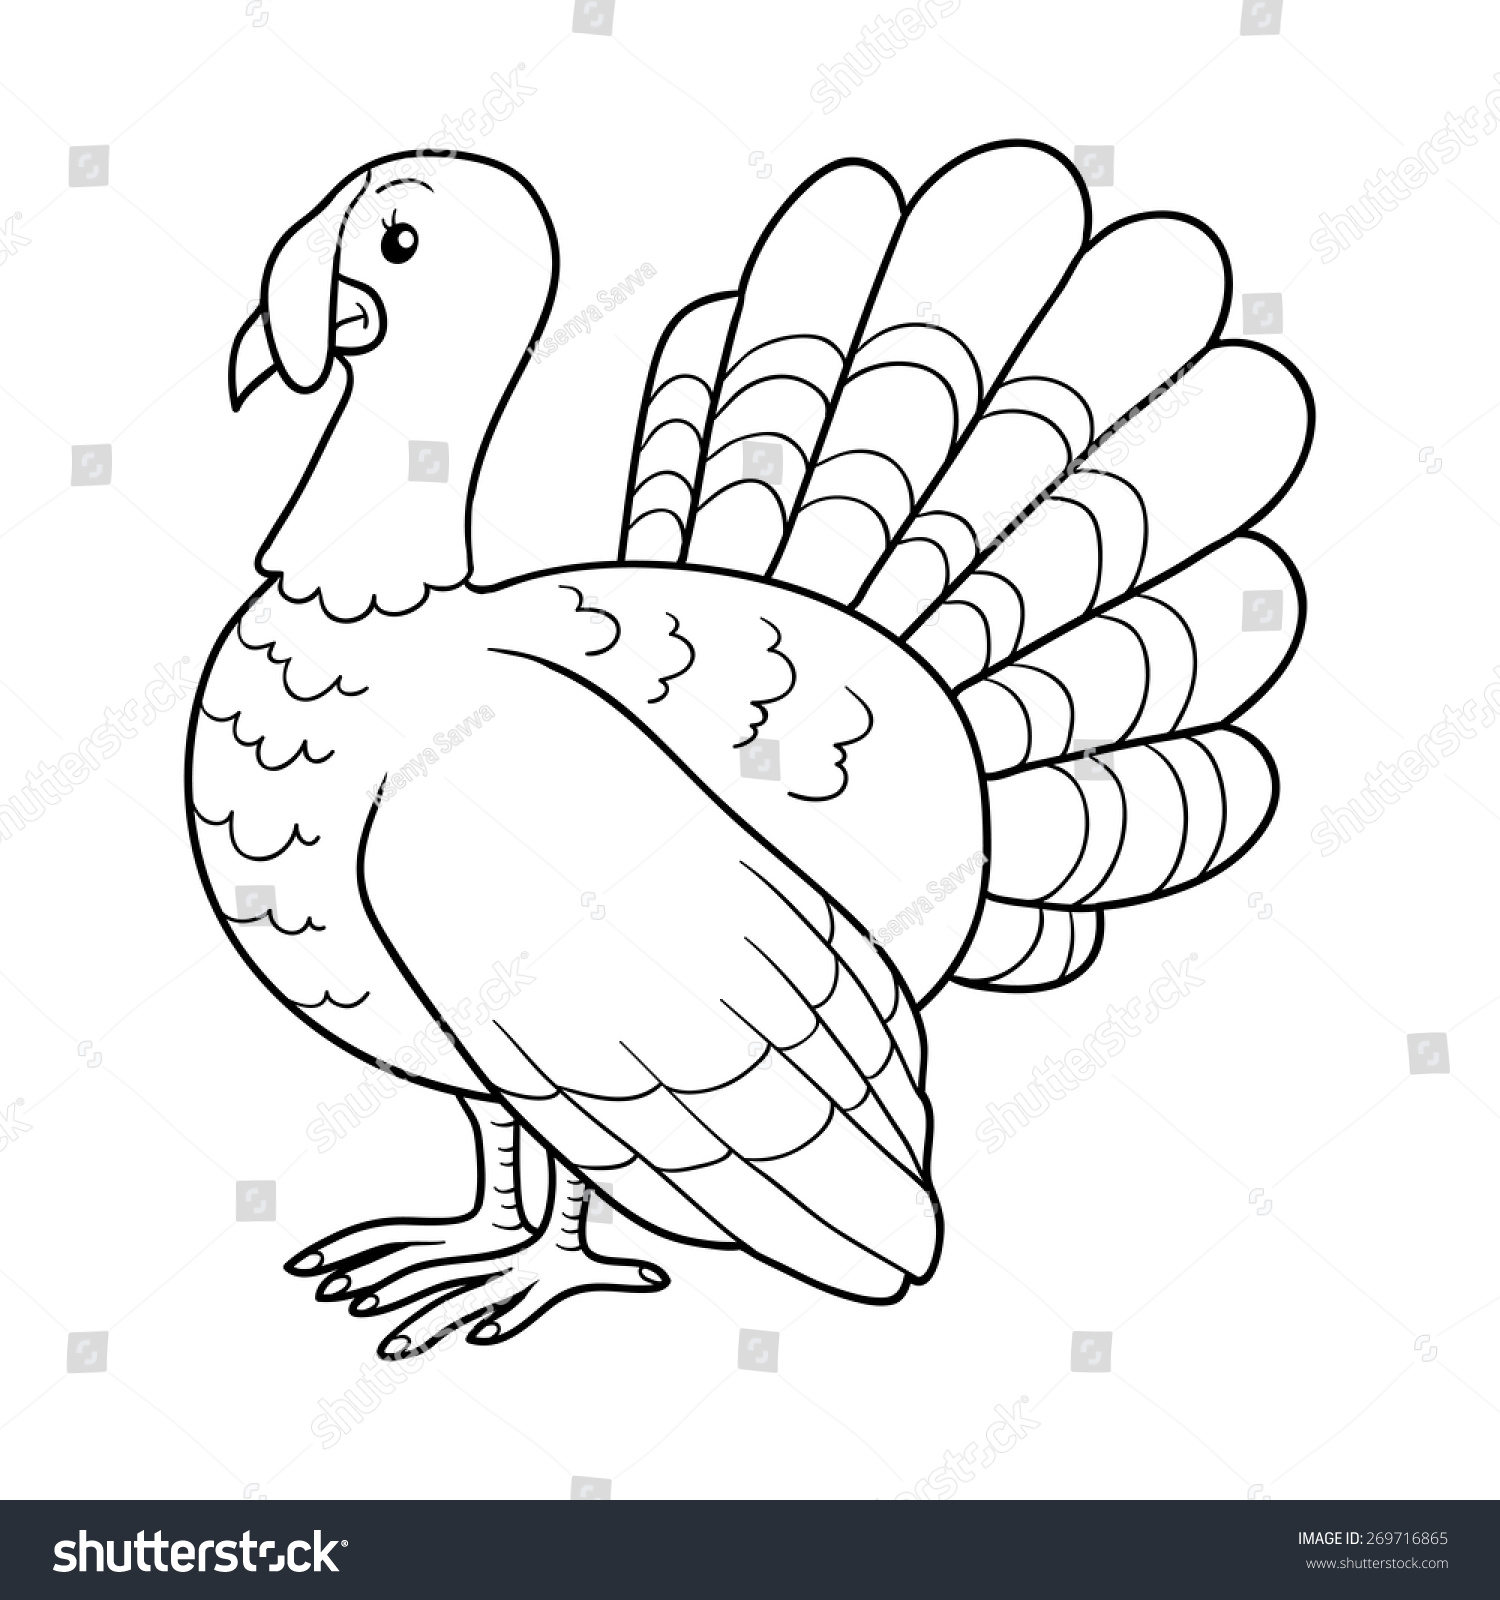 Coloring Book Turkey Stock Vector 269716865 - Shutterstock